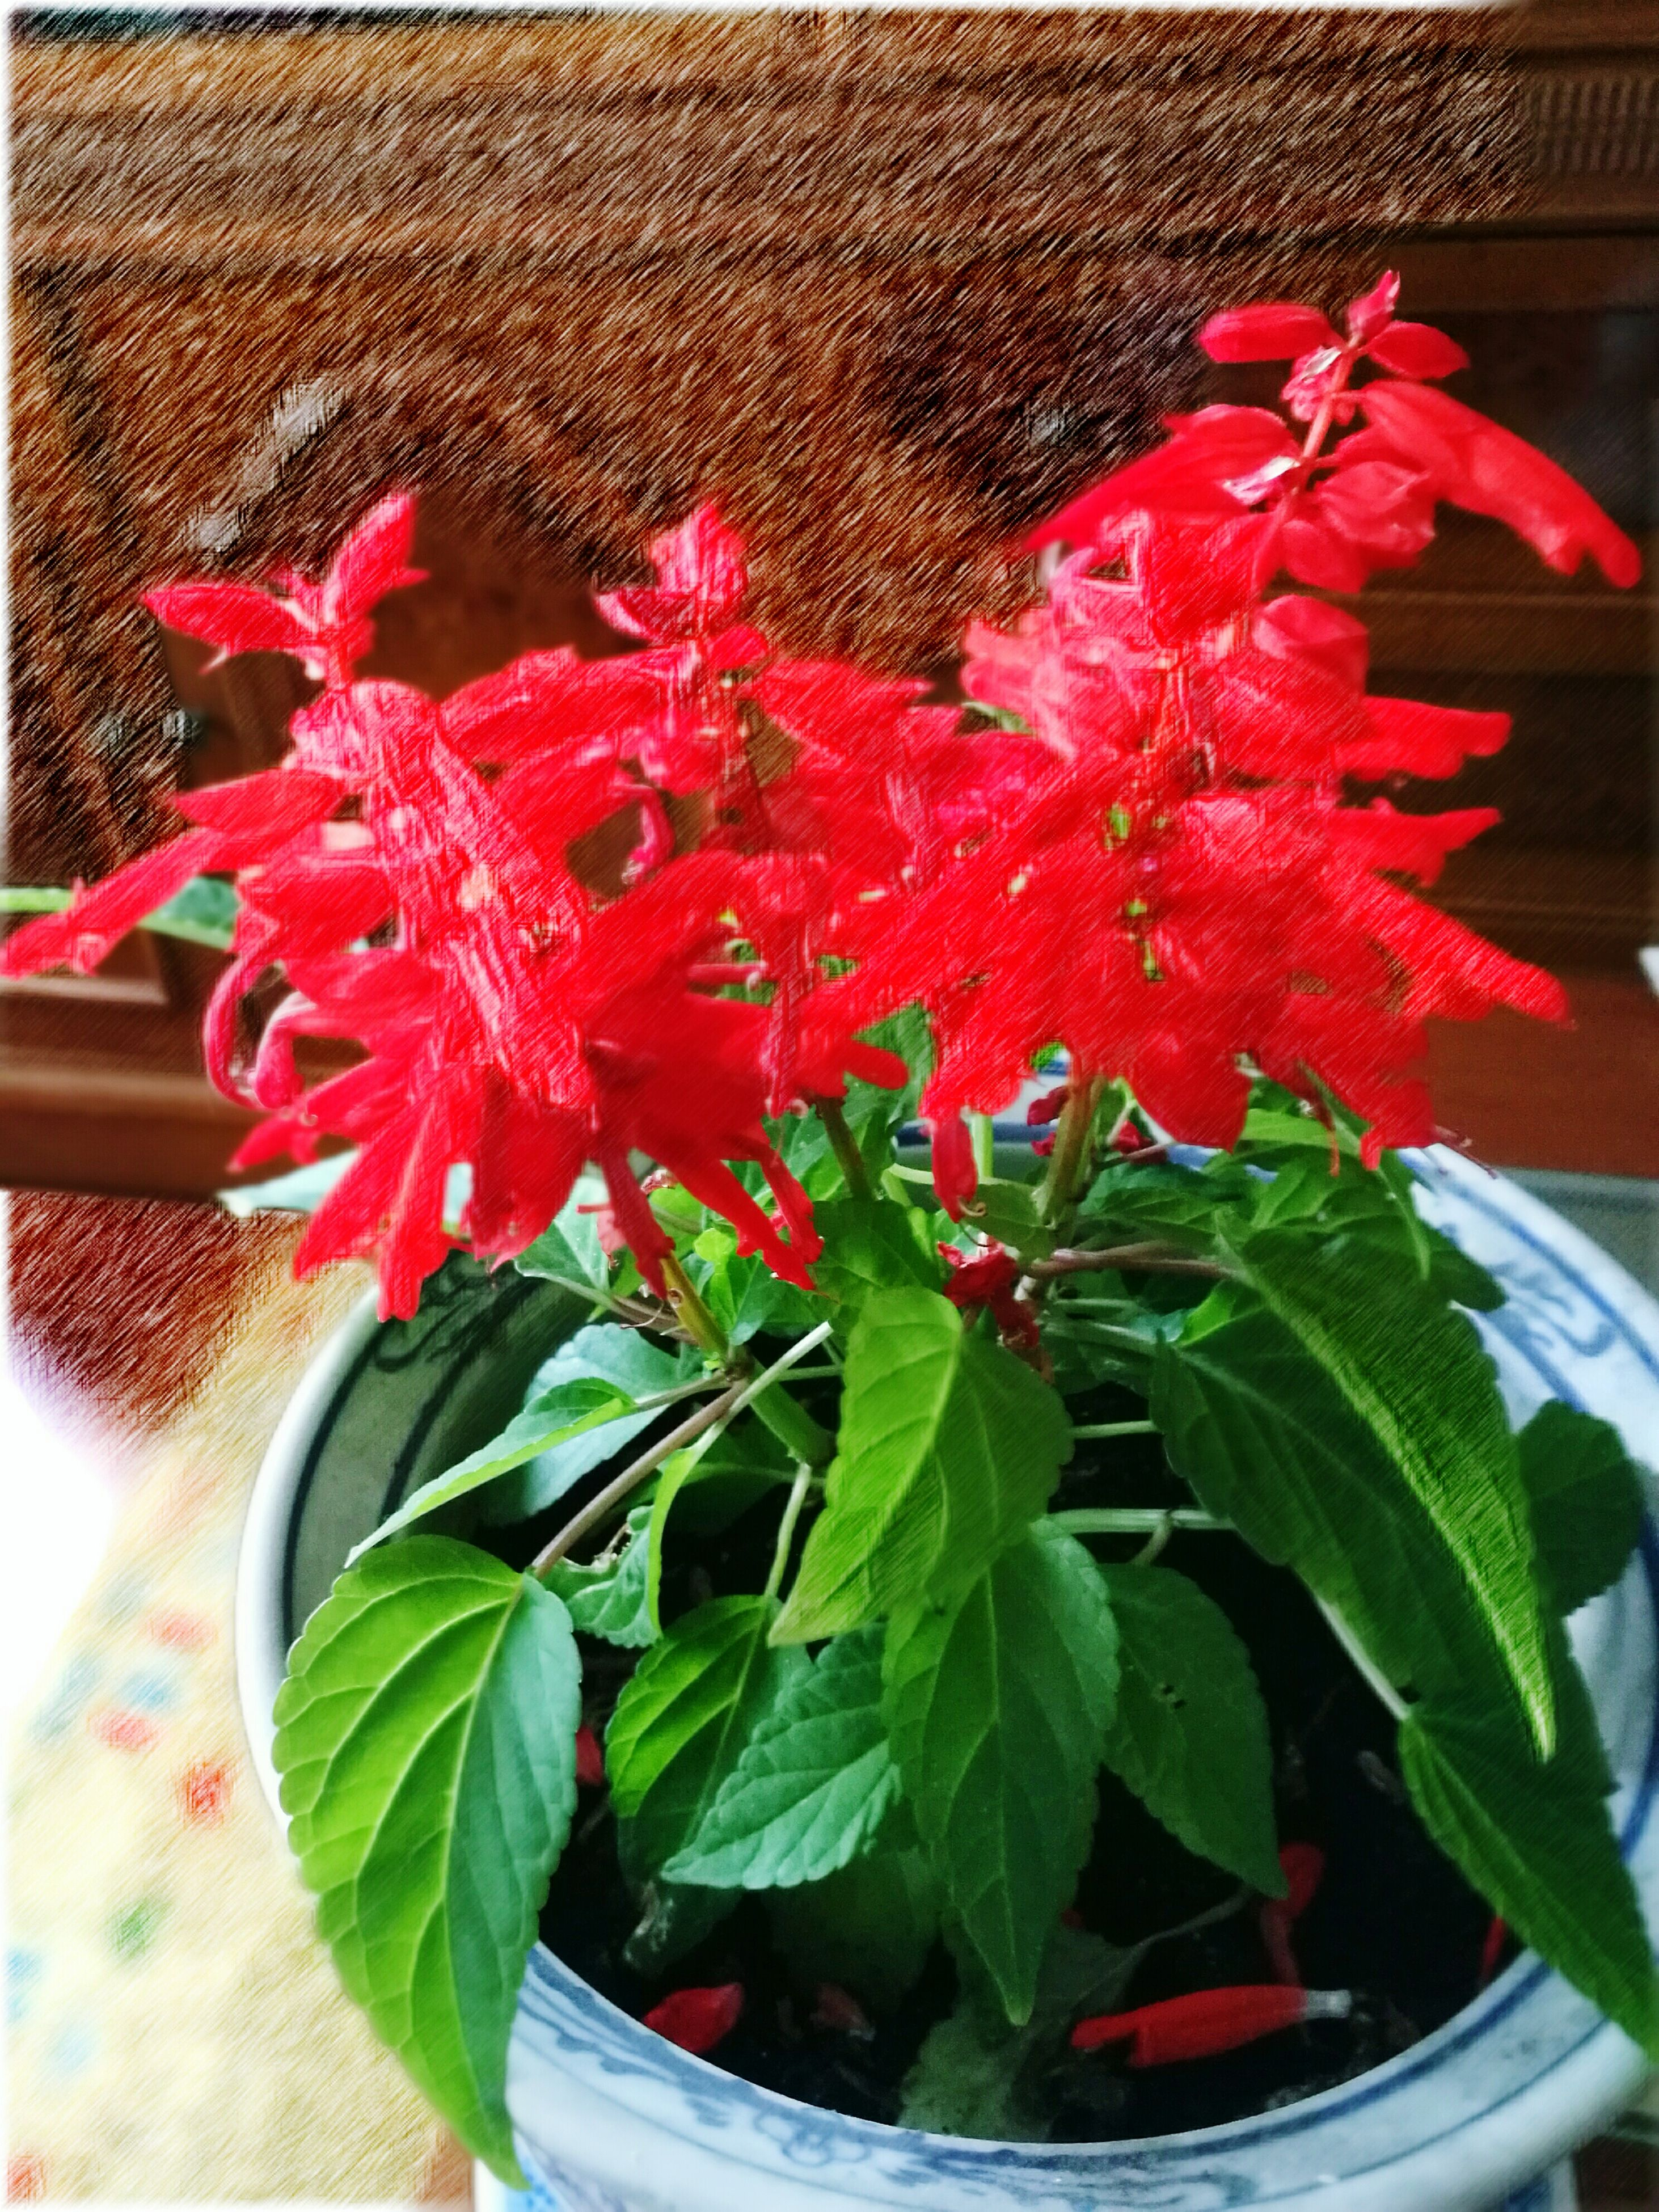 flower, freshness, fragility, petal, plant, red, growth, potted plant, flower head, leaf, beauty in nature, close-up, nature, indoors, flower pot, bouquet, vase, blooming, auto post production filter, high angle view